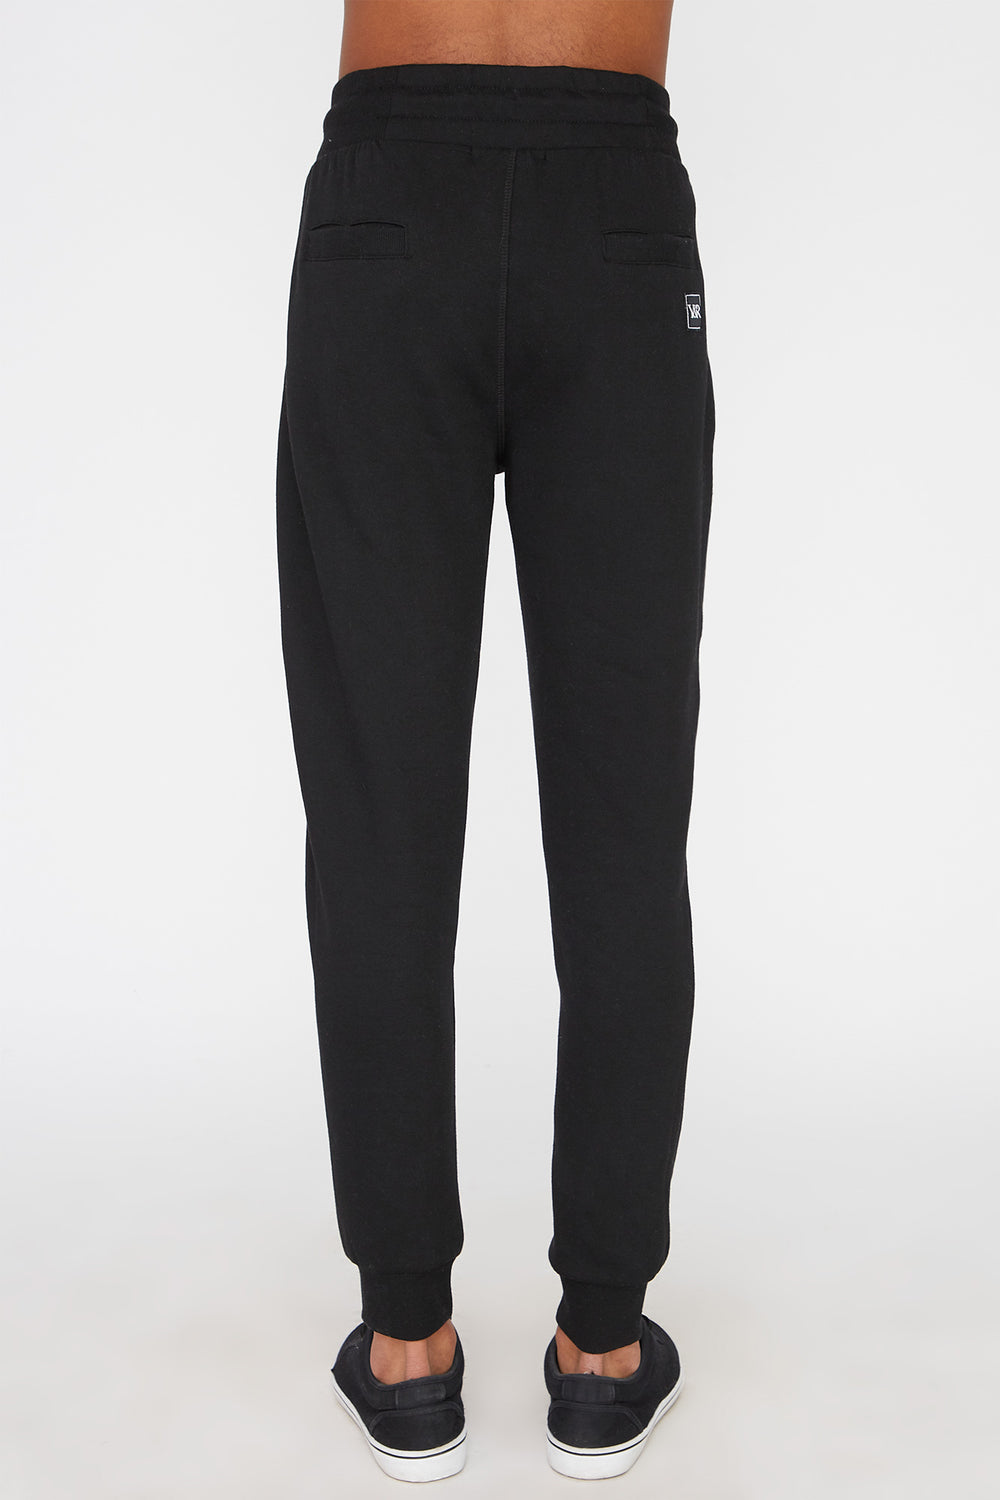 Joggers Avec Accents Fluo Young & Reckless Homme Noir